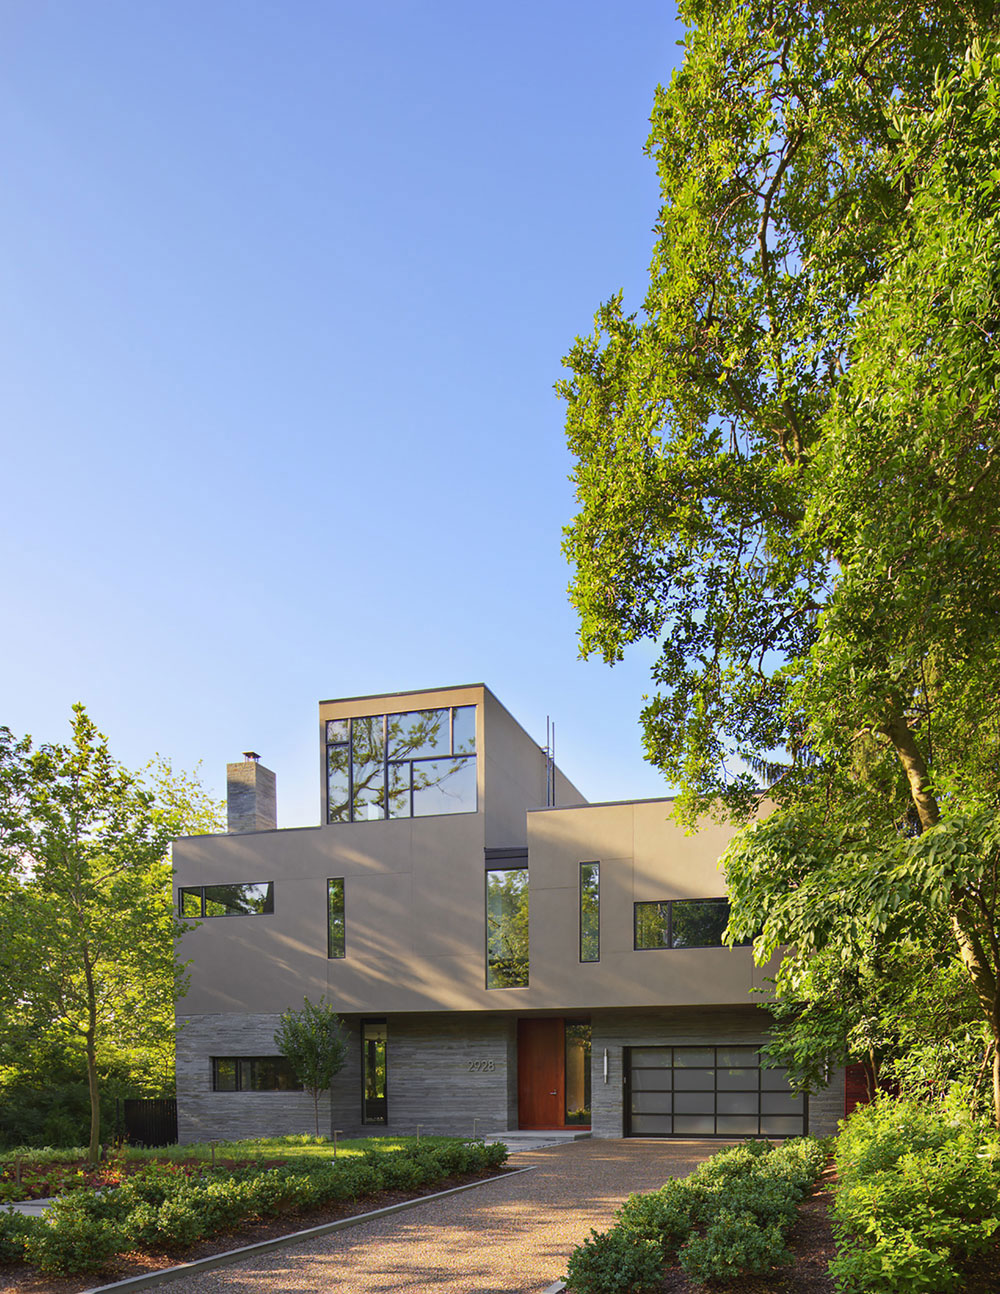 The Brandywine-house-is-an-interior-design-and-architecture-inspiration-1 The Brandywine house is an inspiration for interior design and architecture